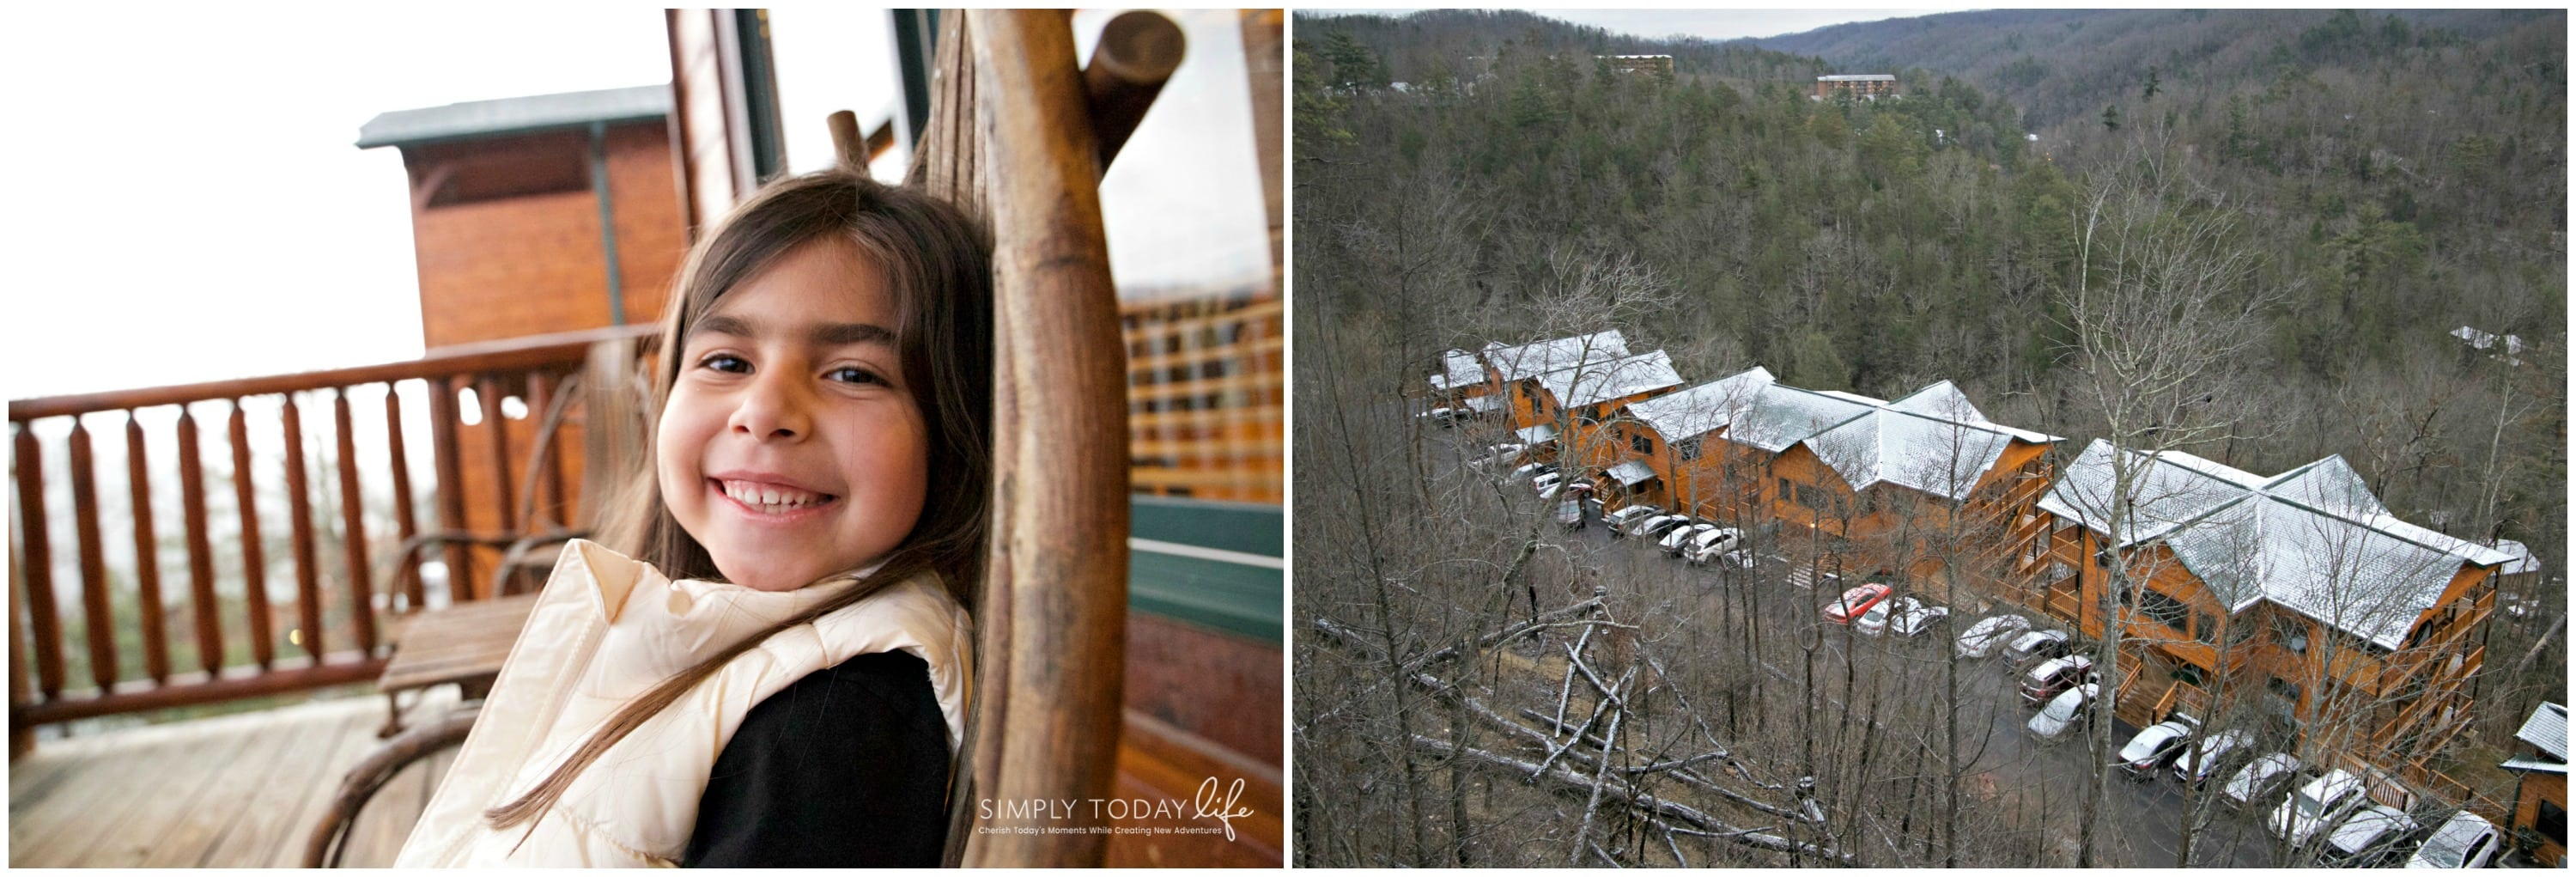 Gatlinburg Falls Resort Cabins for Families- simplytodaylife.com